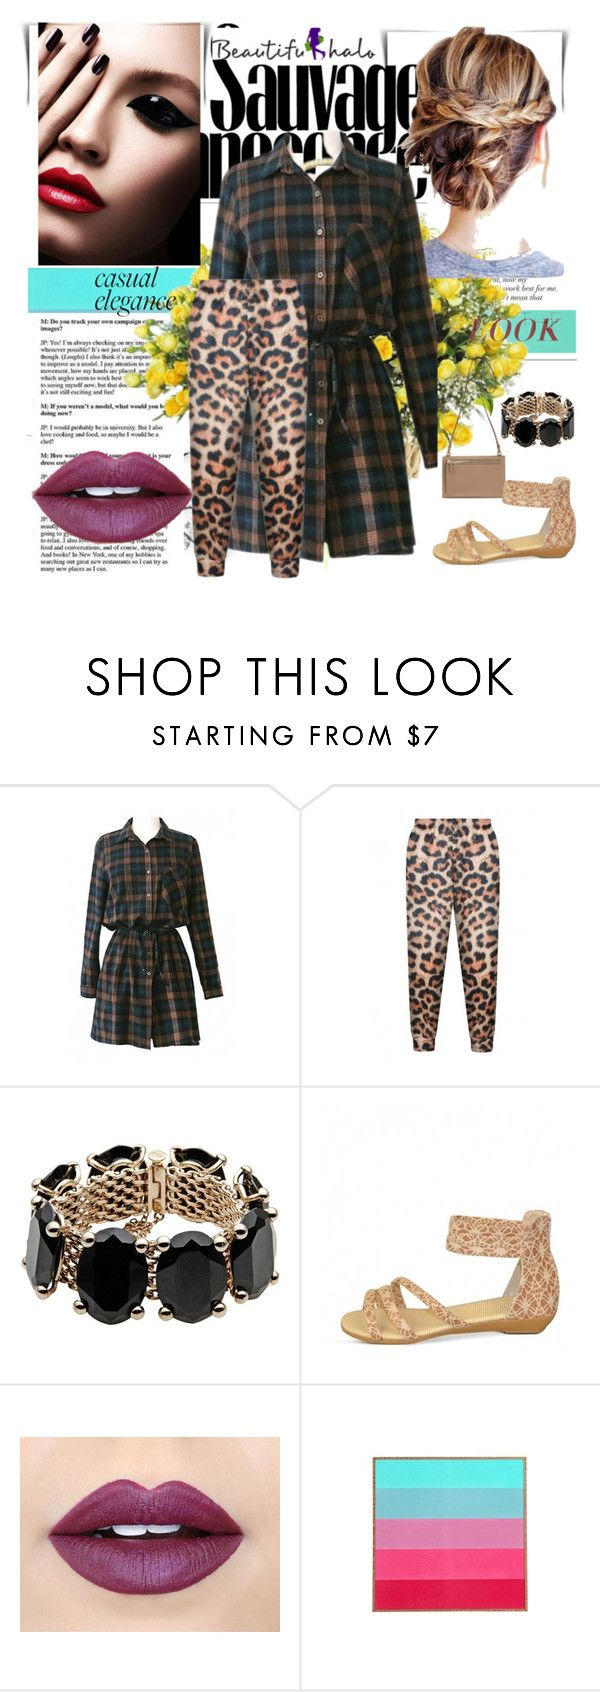 """""""Beautifulhalo 23"""" by nisa-hadzic ❤ liked on Polyvore featuring Valentino, Fiebiger, DENY Designs and bhalo"""